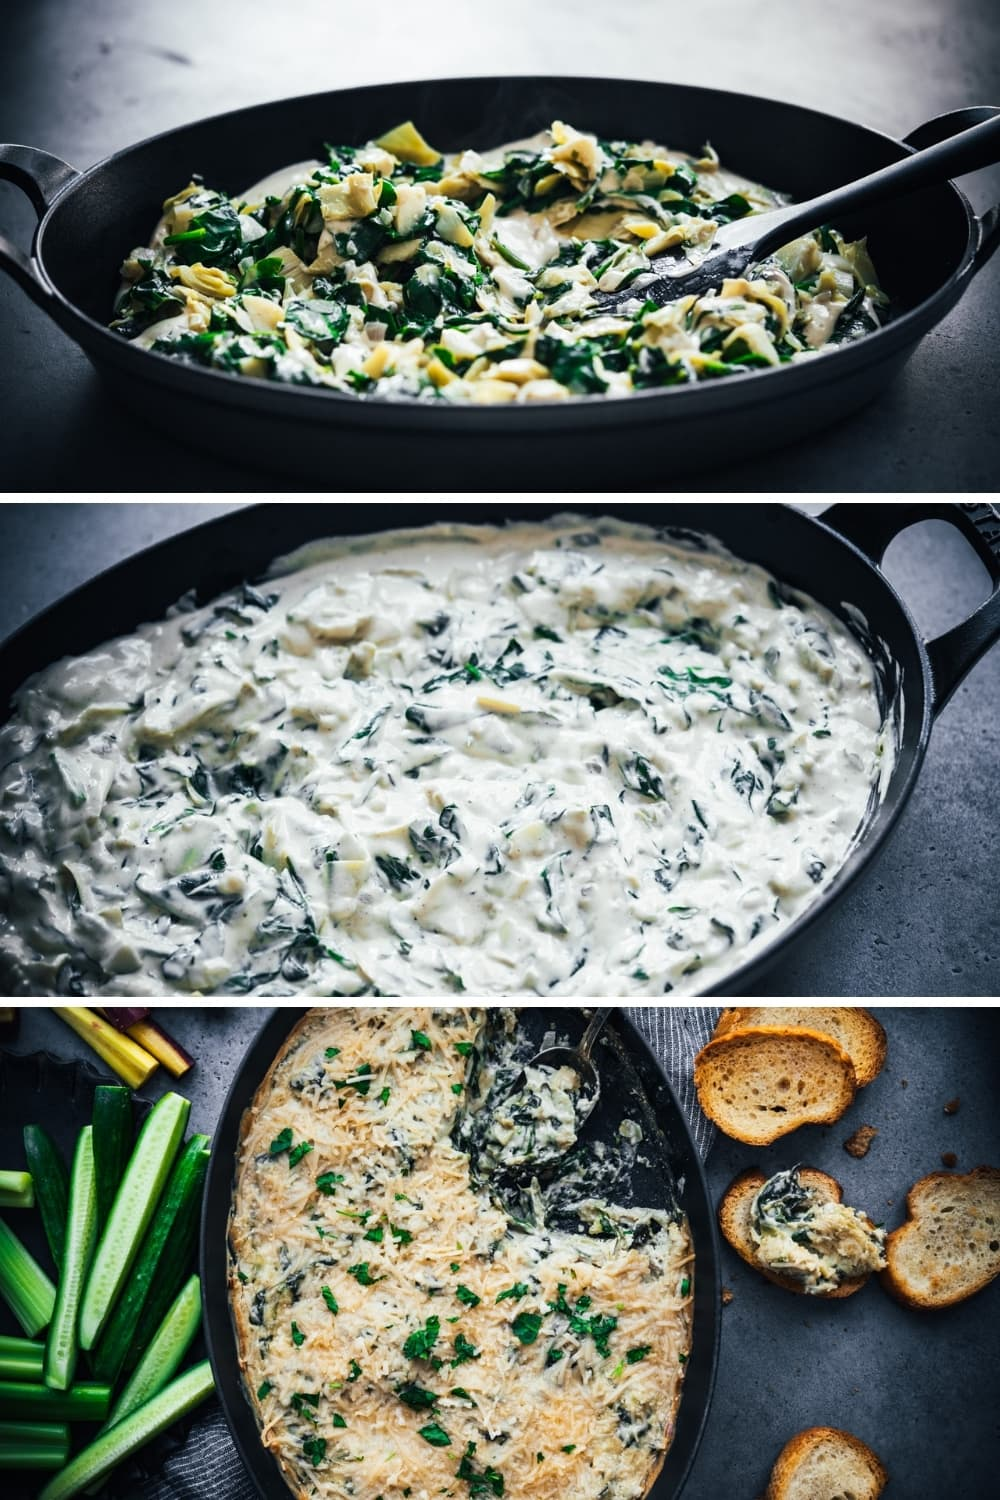 assembling spinach artichoke dip in large skillet.